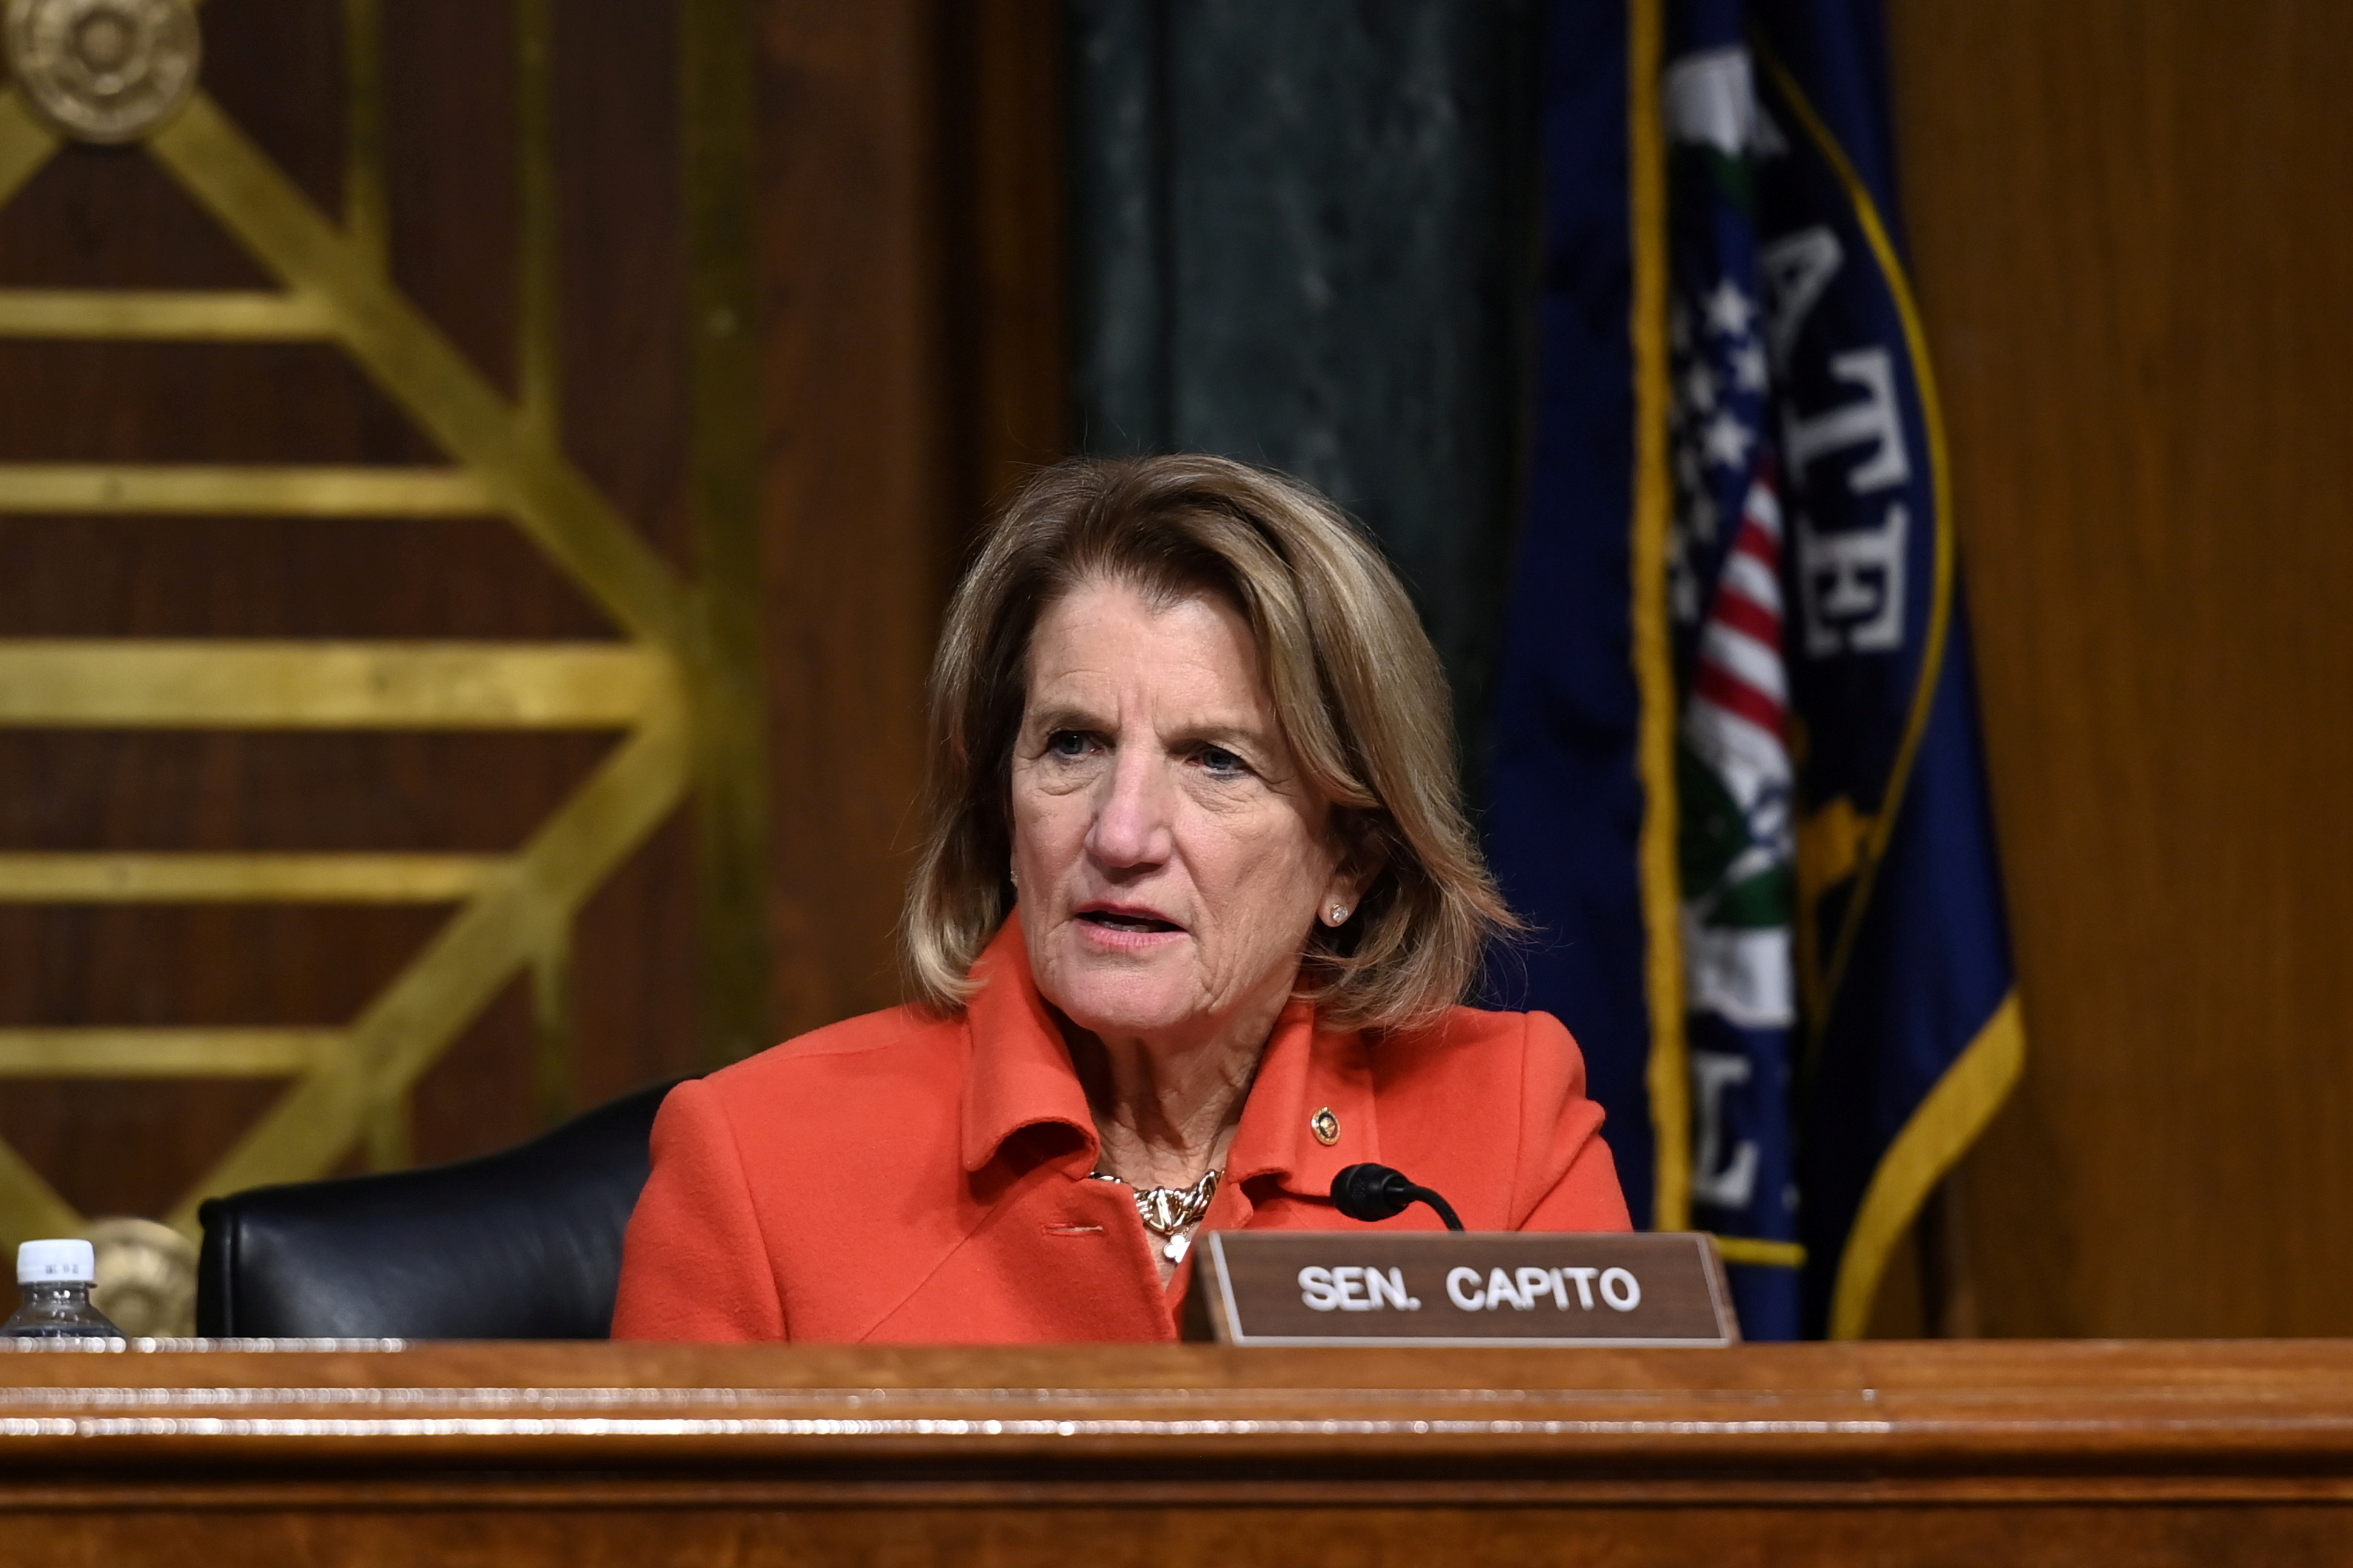 U.S. Senator Shelley Moore Capito (R-WV) listens during a Senate Environment and Public Works Committee hearing on Michael Regan's nomination to be Administrator of the Environmental Protection Agency (EPA) on Capitol Hill in Washington, U.S., February 3, 2021. REUTERS/Brandon Bell/Pool/File Photo